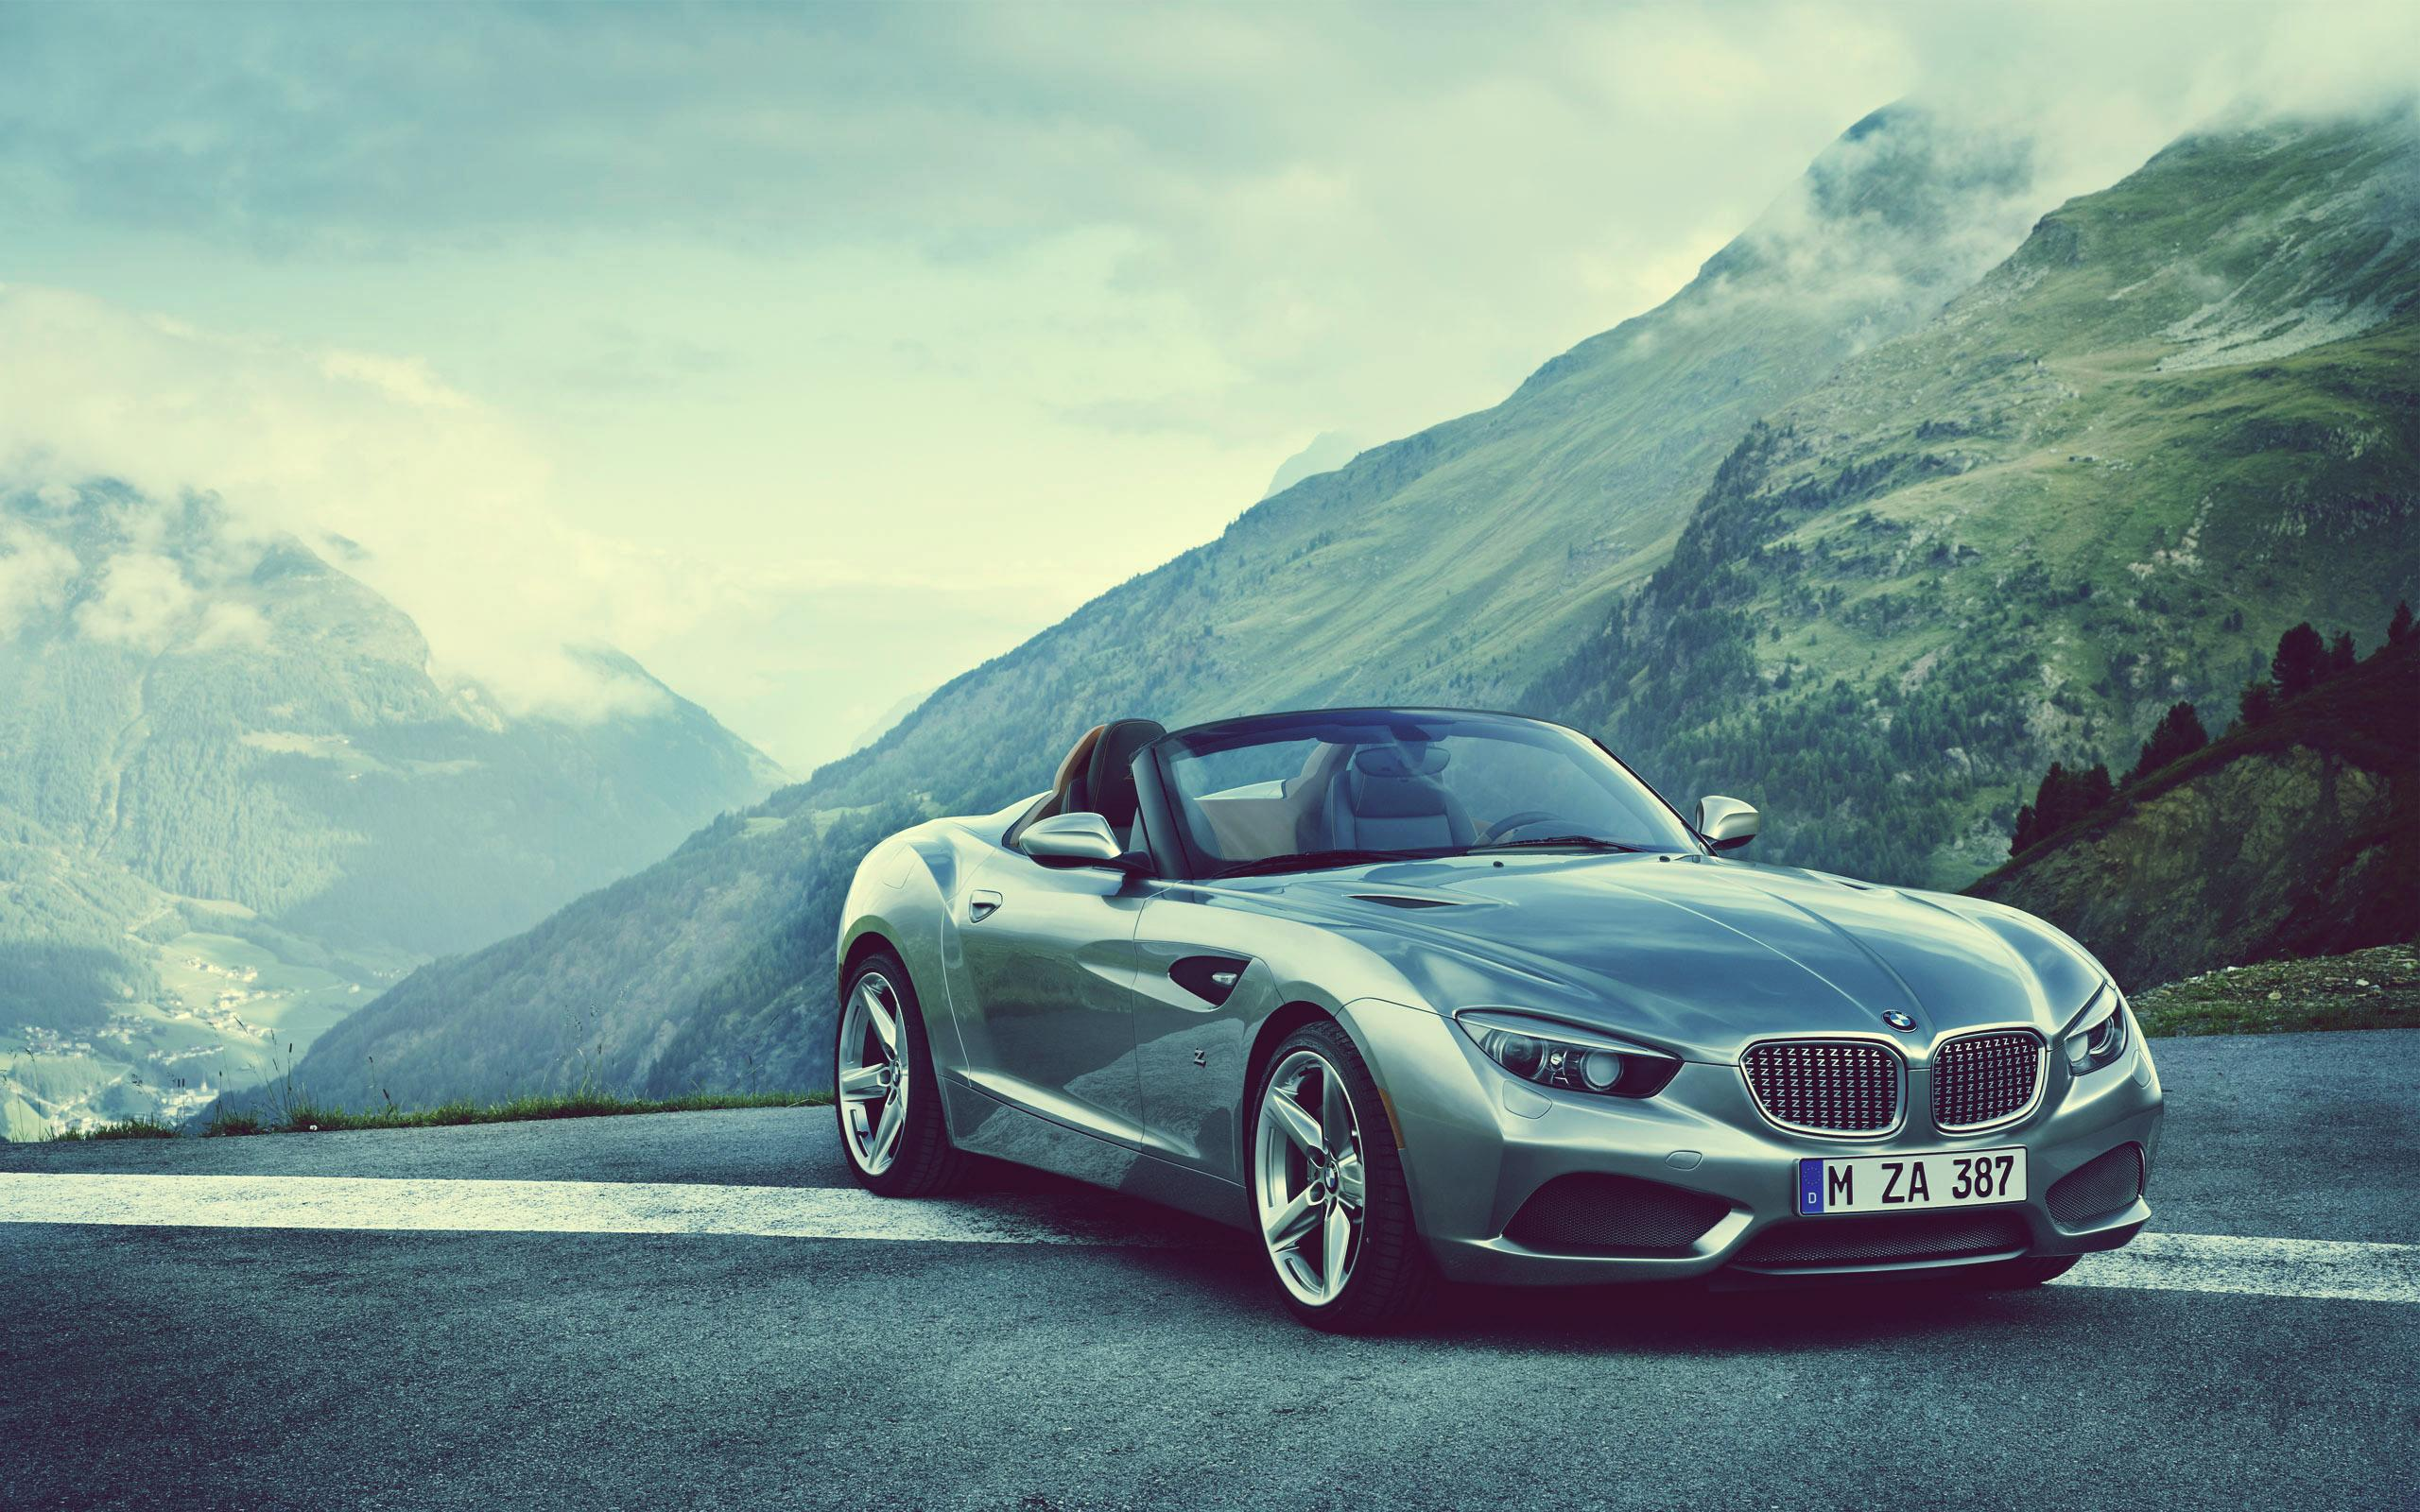 2560x1600 - BMW Zagato Coupe Wallpapers 11